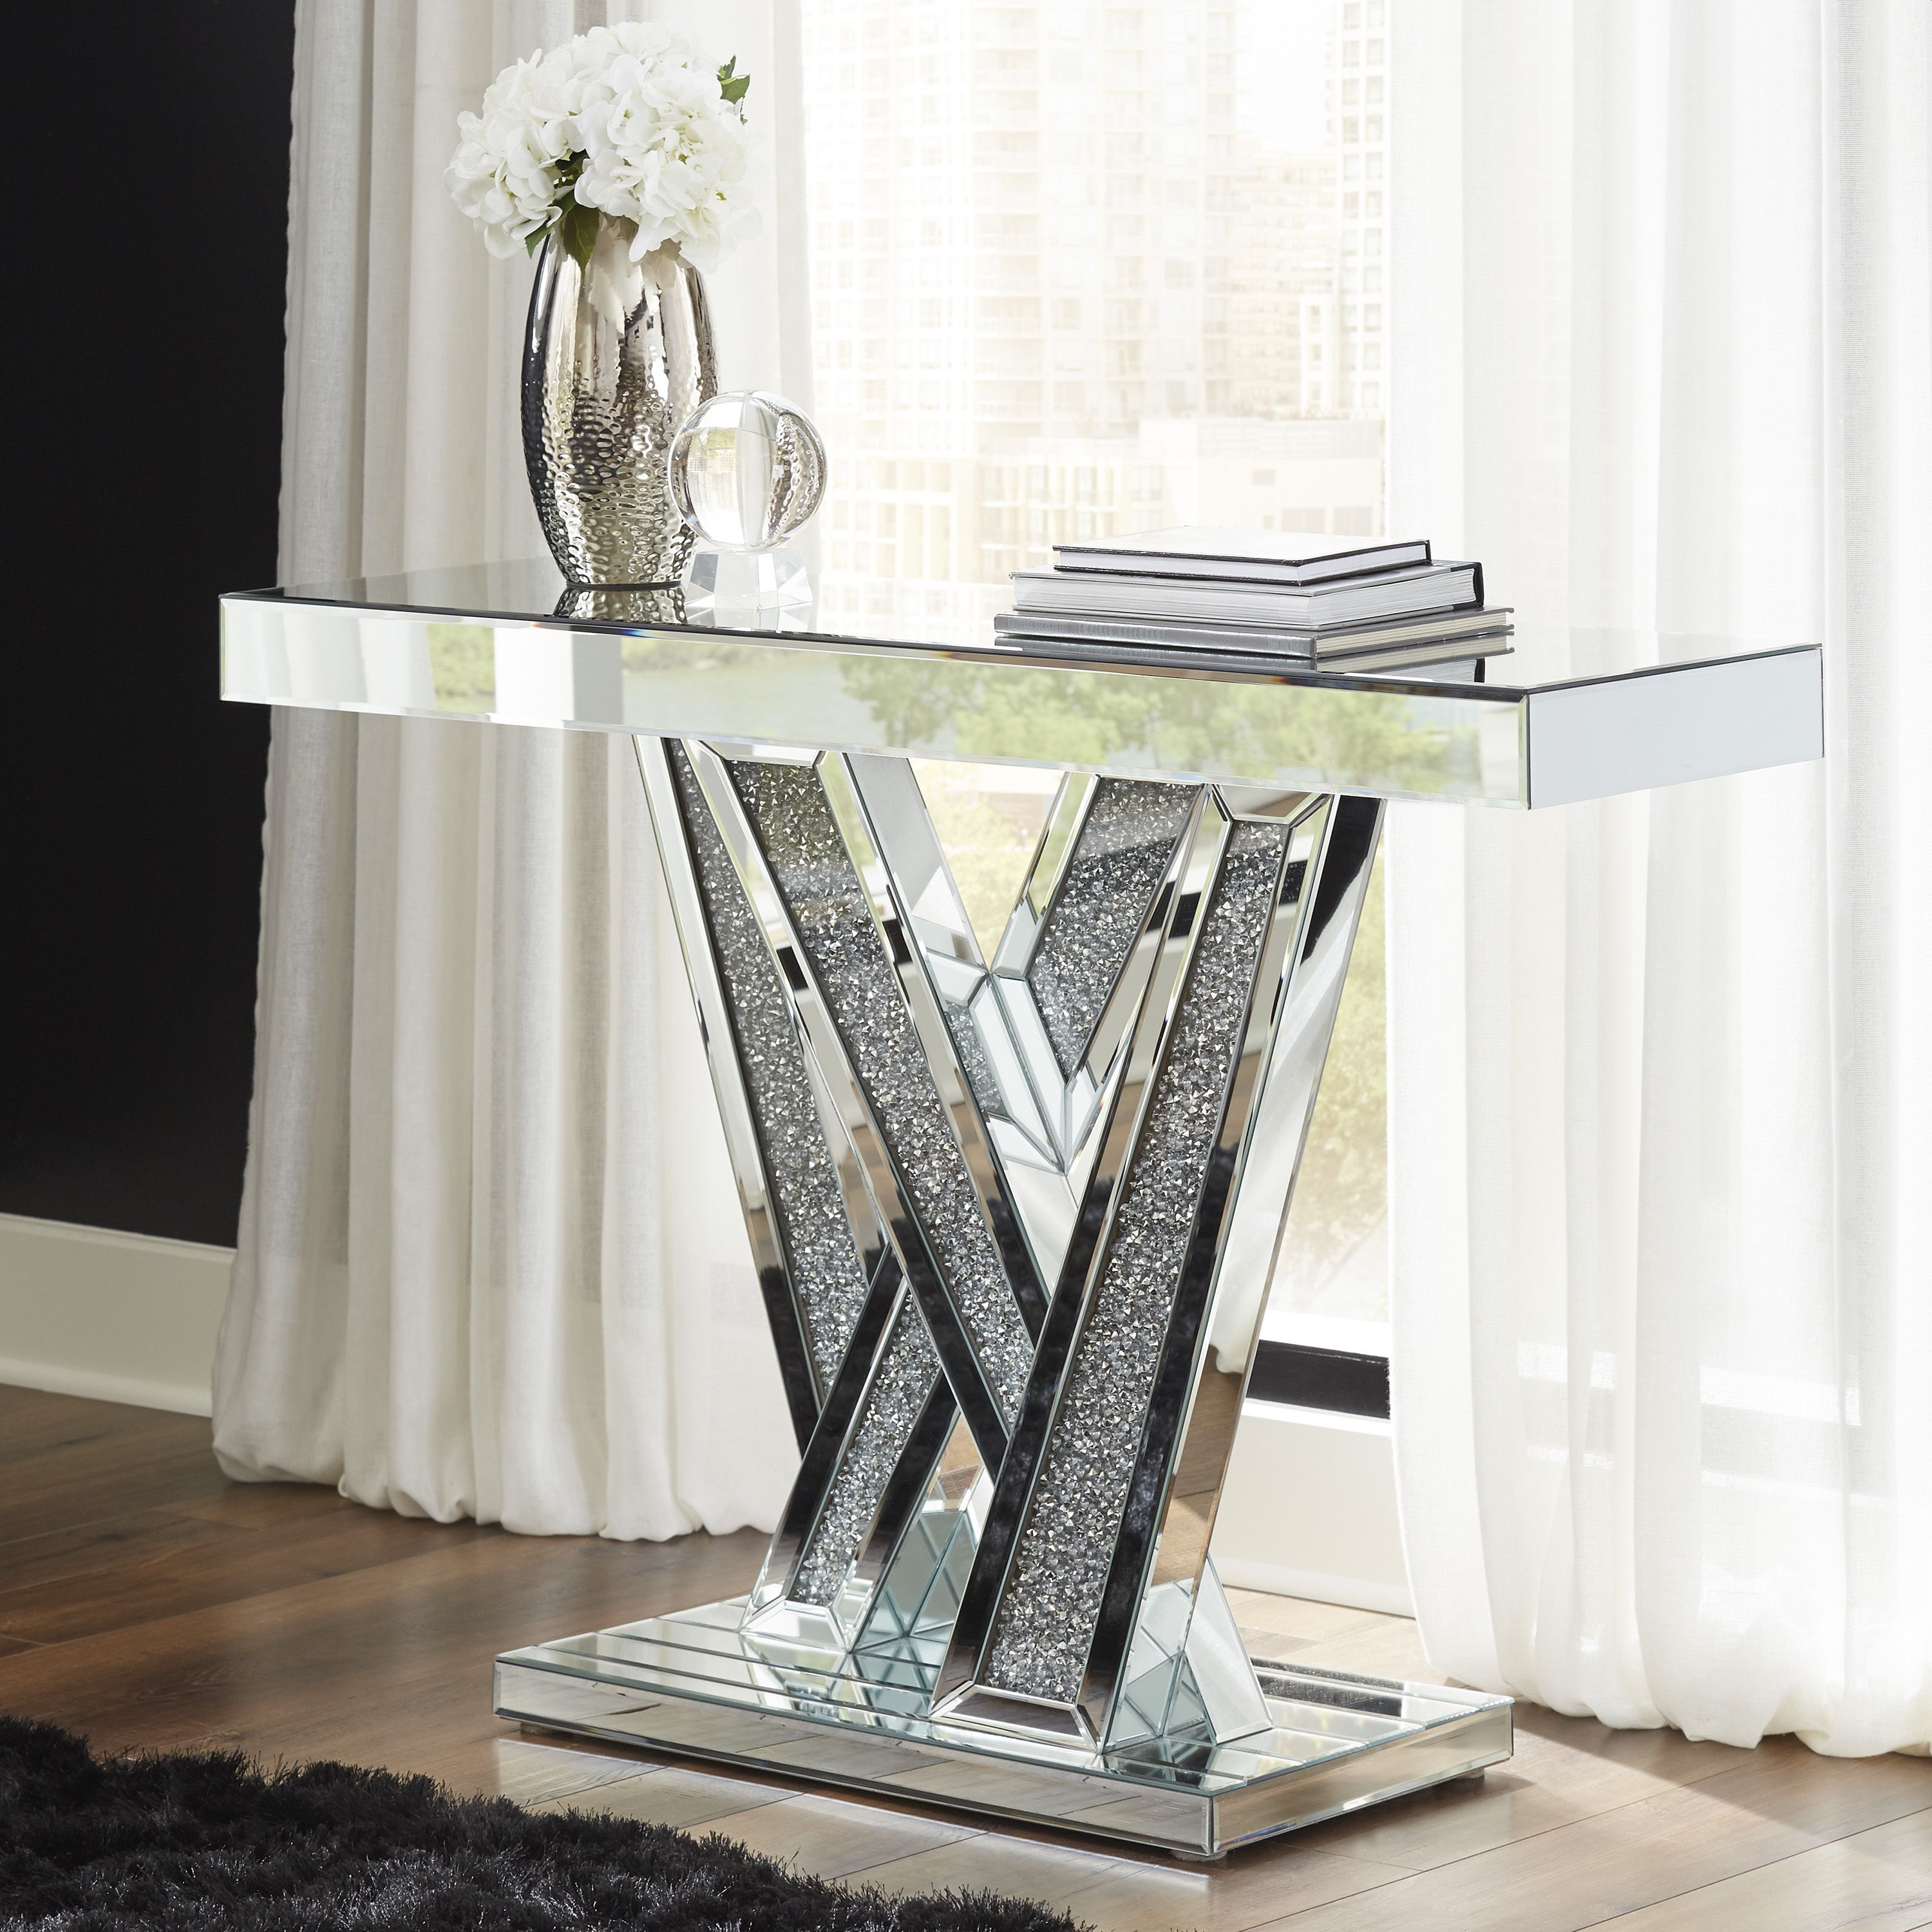 A4000170 In By Ashley Furniture In Mcallen Tx Gillrock Silver Accent Console Table In 2021 Ashley Furniture Furniture Console Table